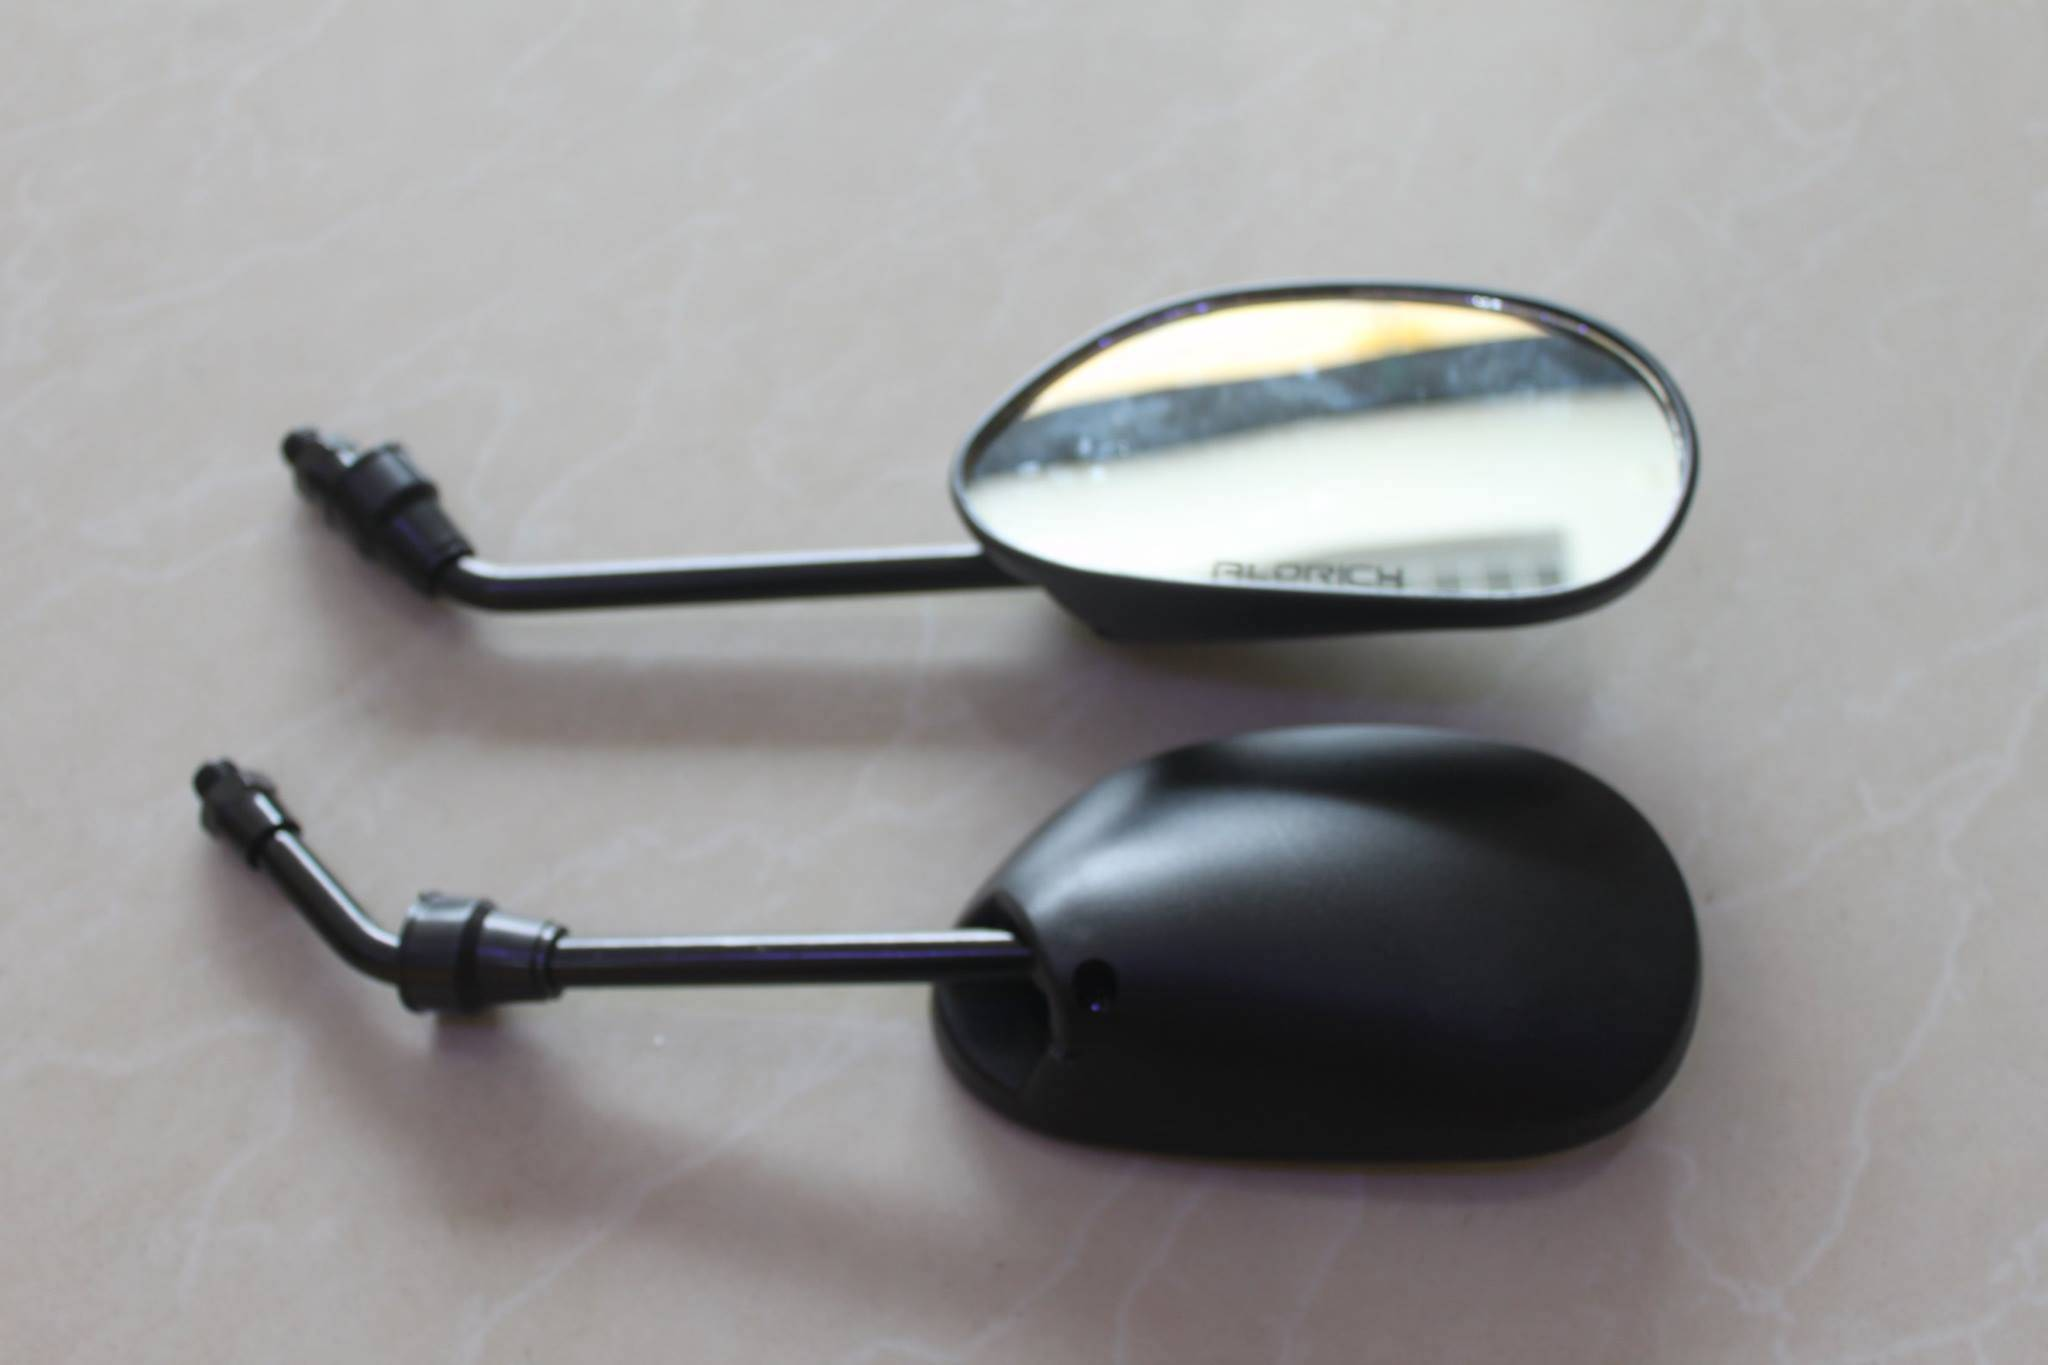 ALDRICH FOR FZ16 MIRROR, A QUALITY!